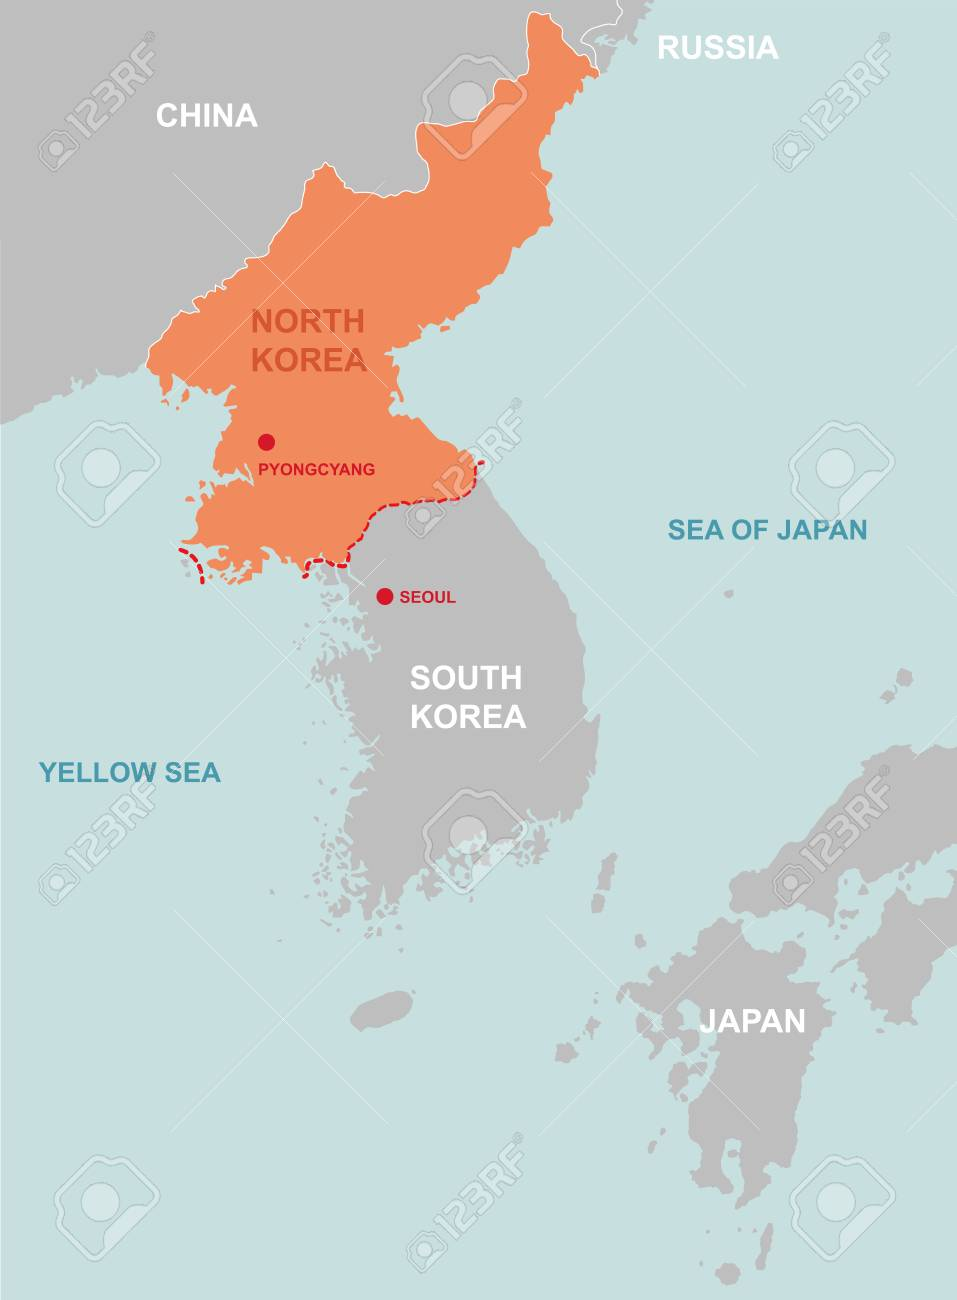 North Korea and surrounding countries map icon. - 91341338